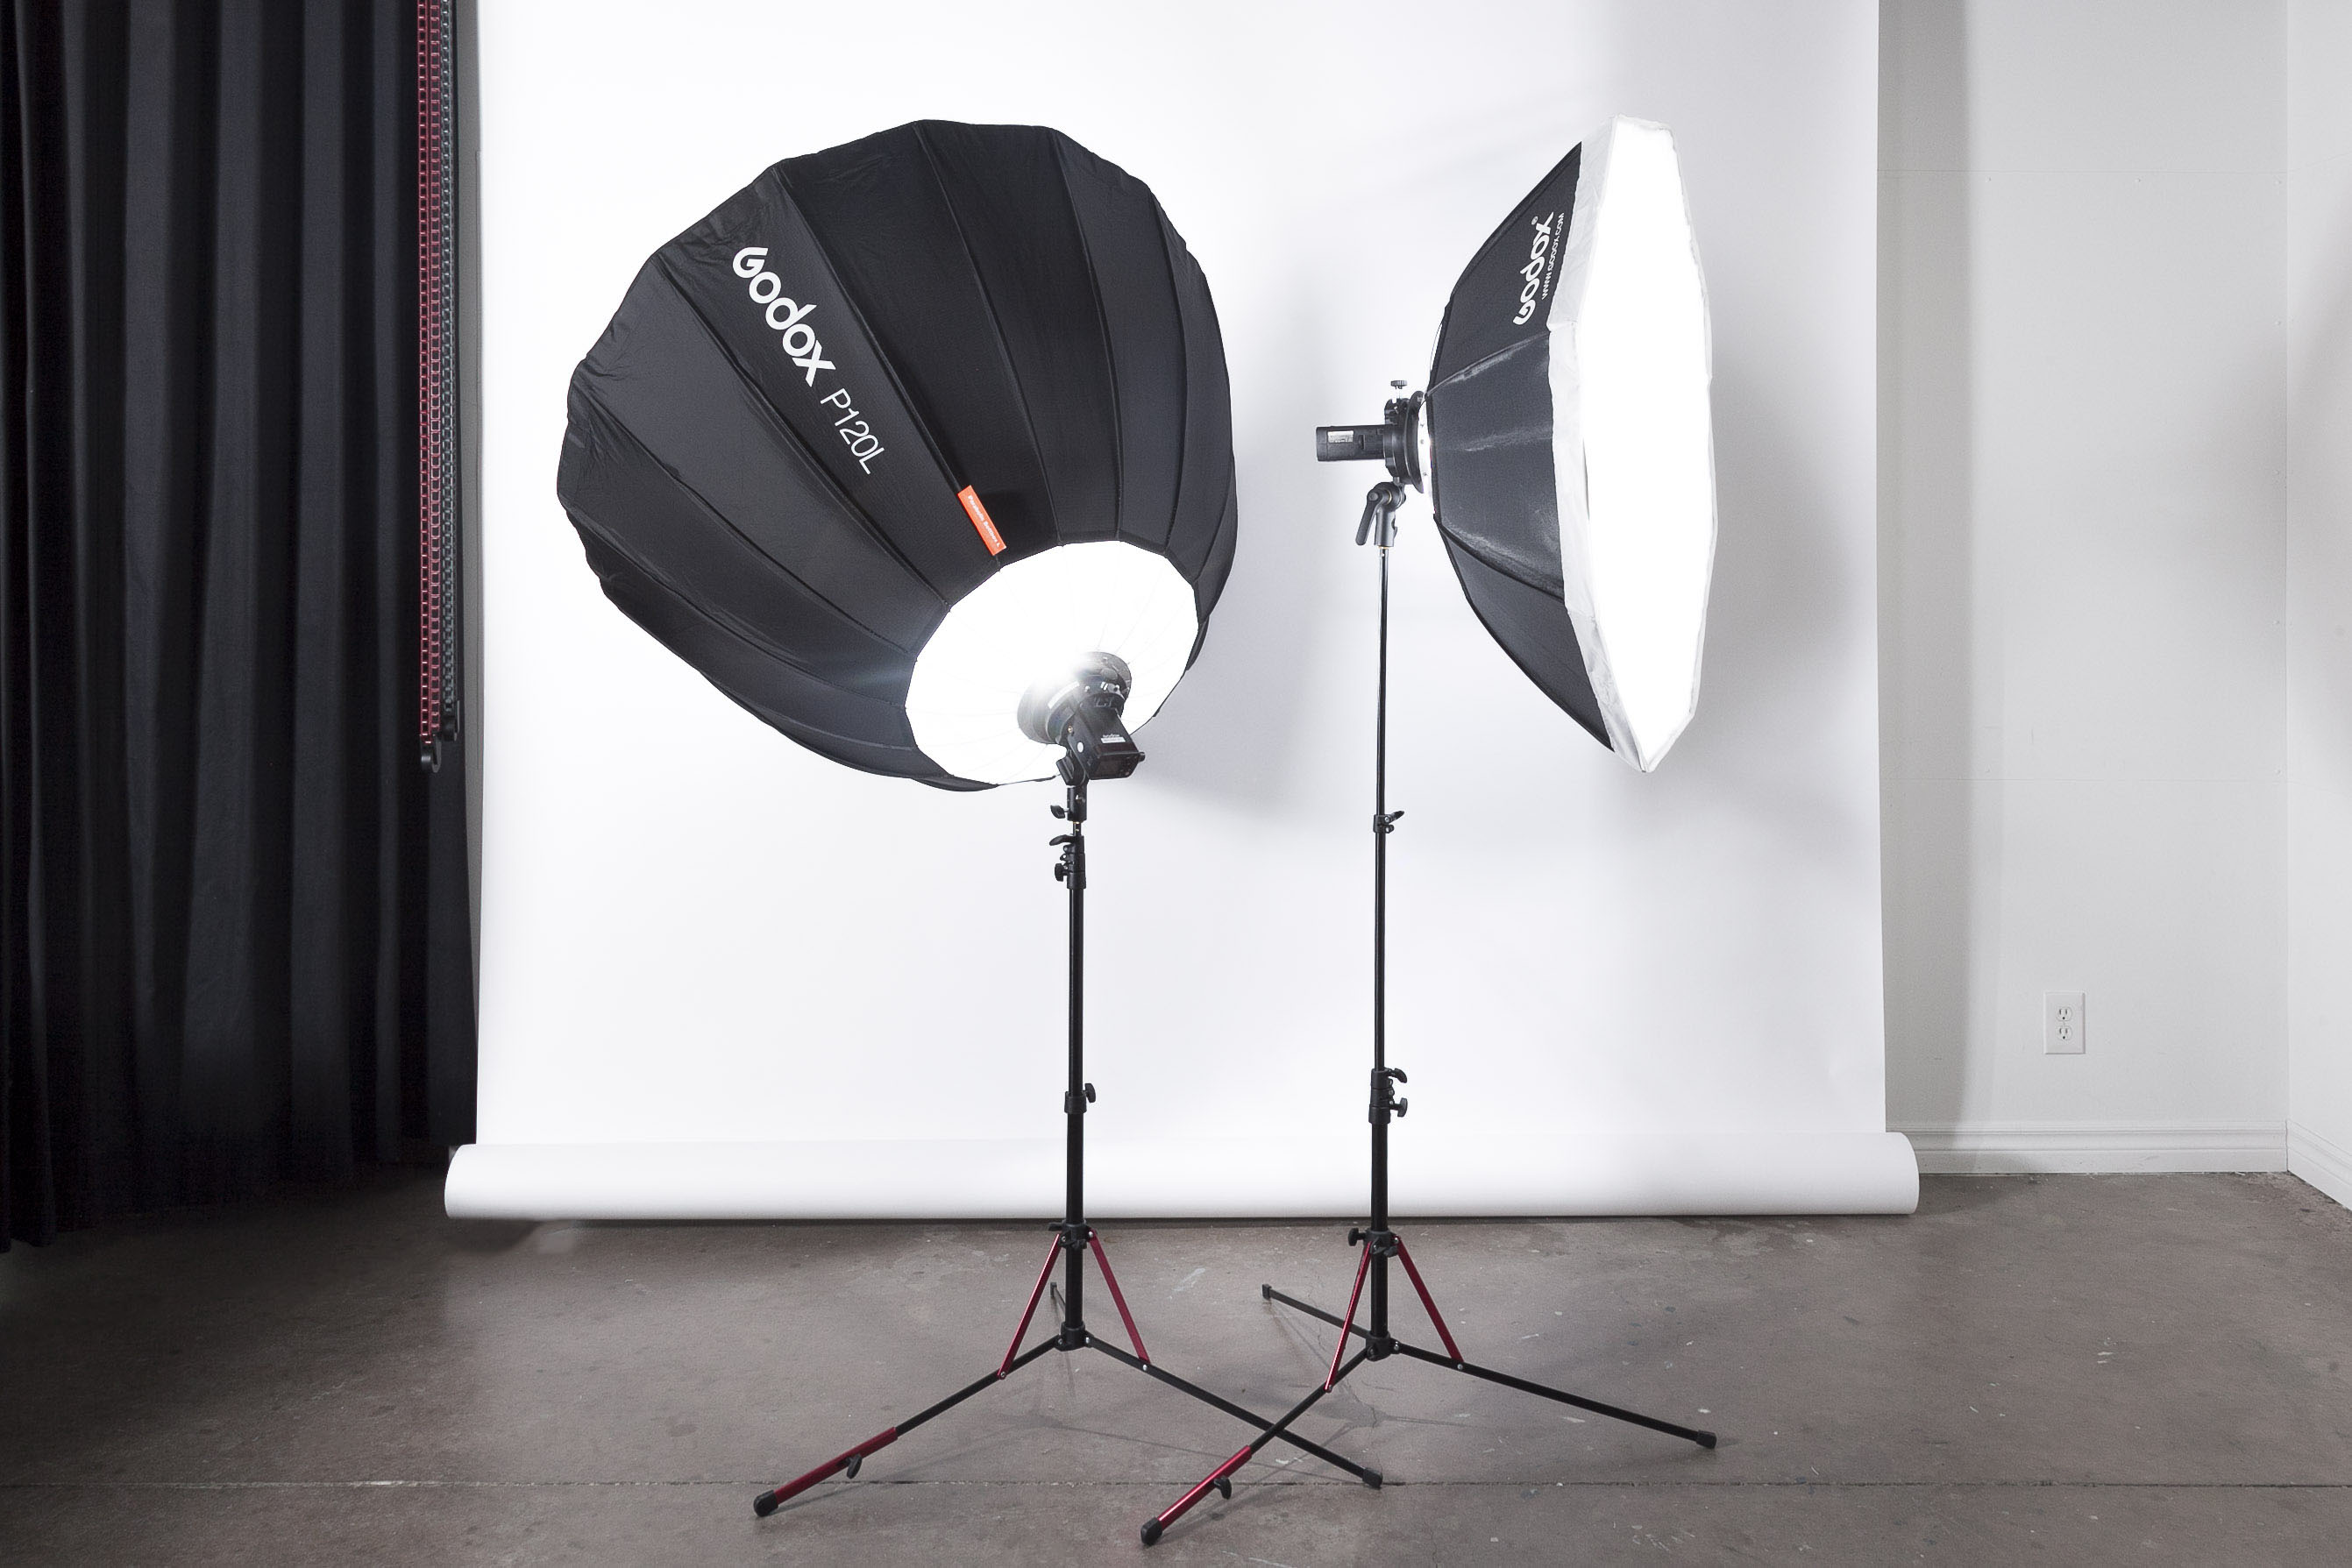 Two Godox Studio Lights are each assembled and laced on a stand in front of a white photography backdrop in a studio.